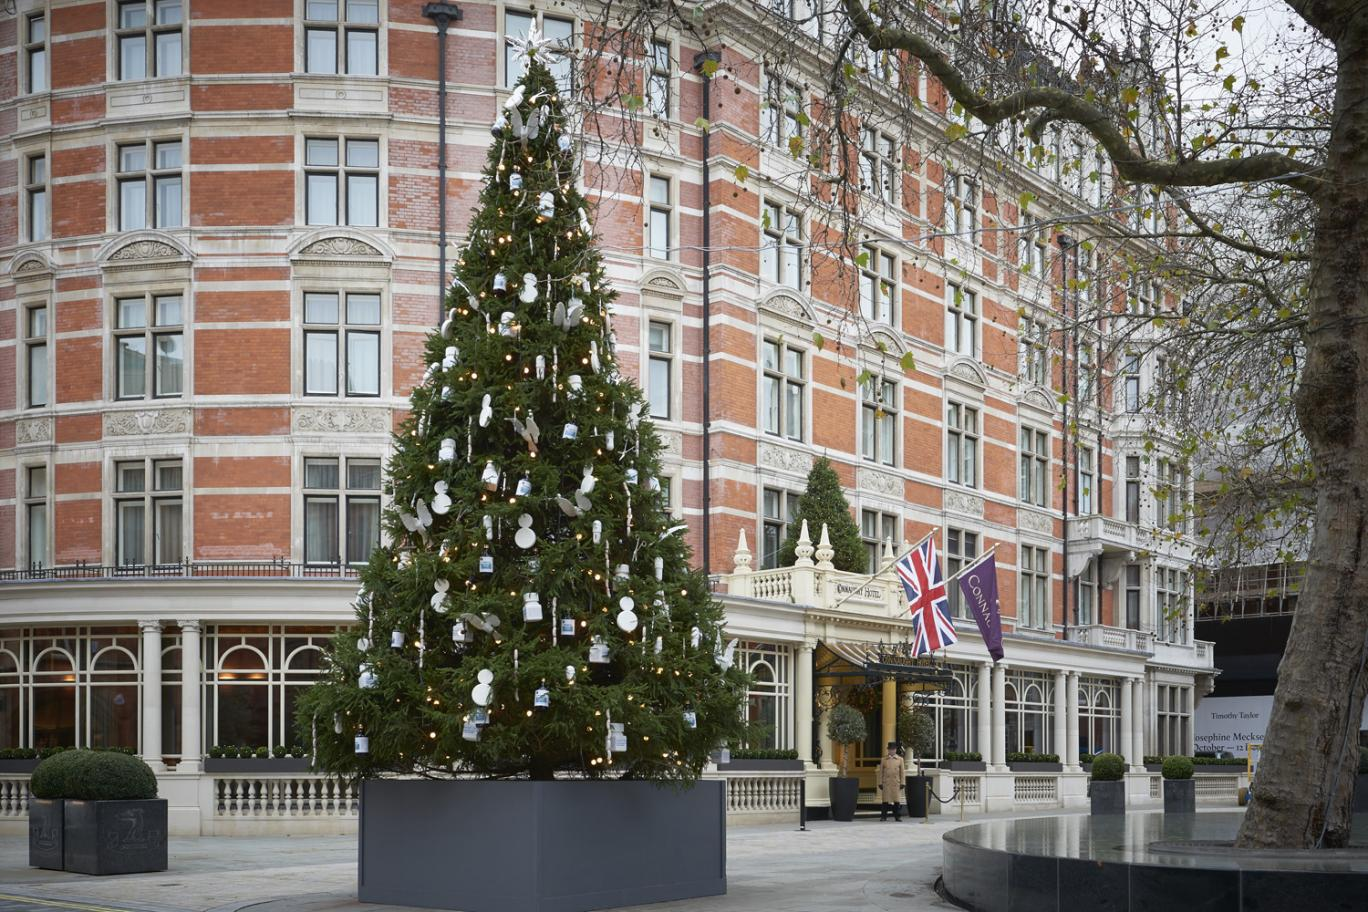 Connaught christmas tree by Damien Hirst